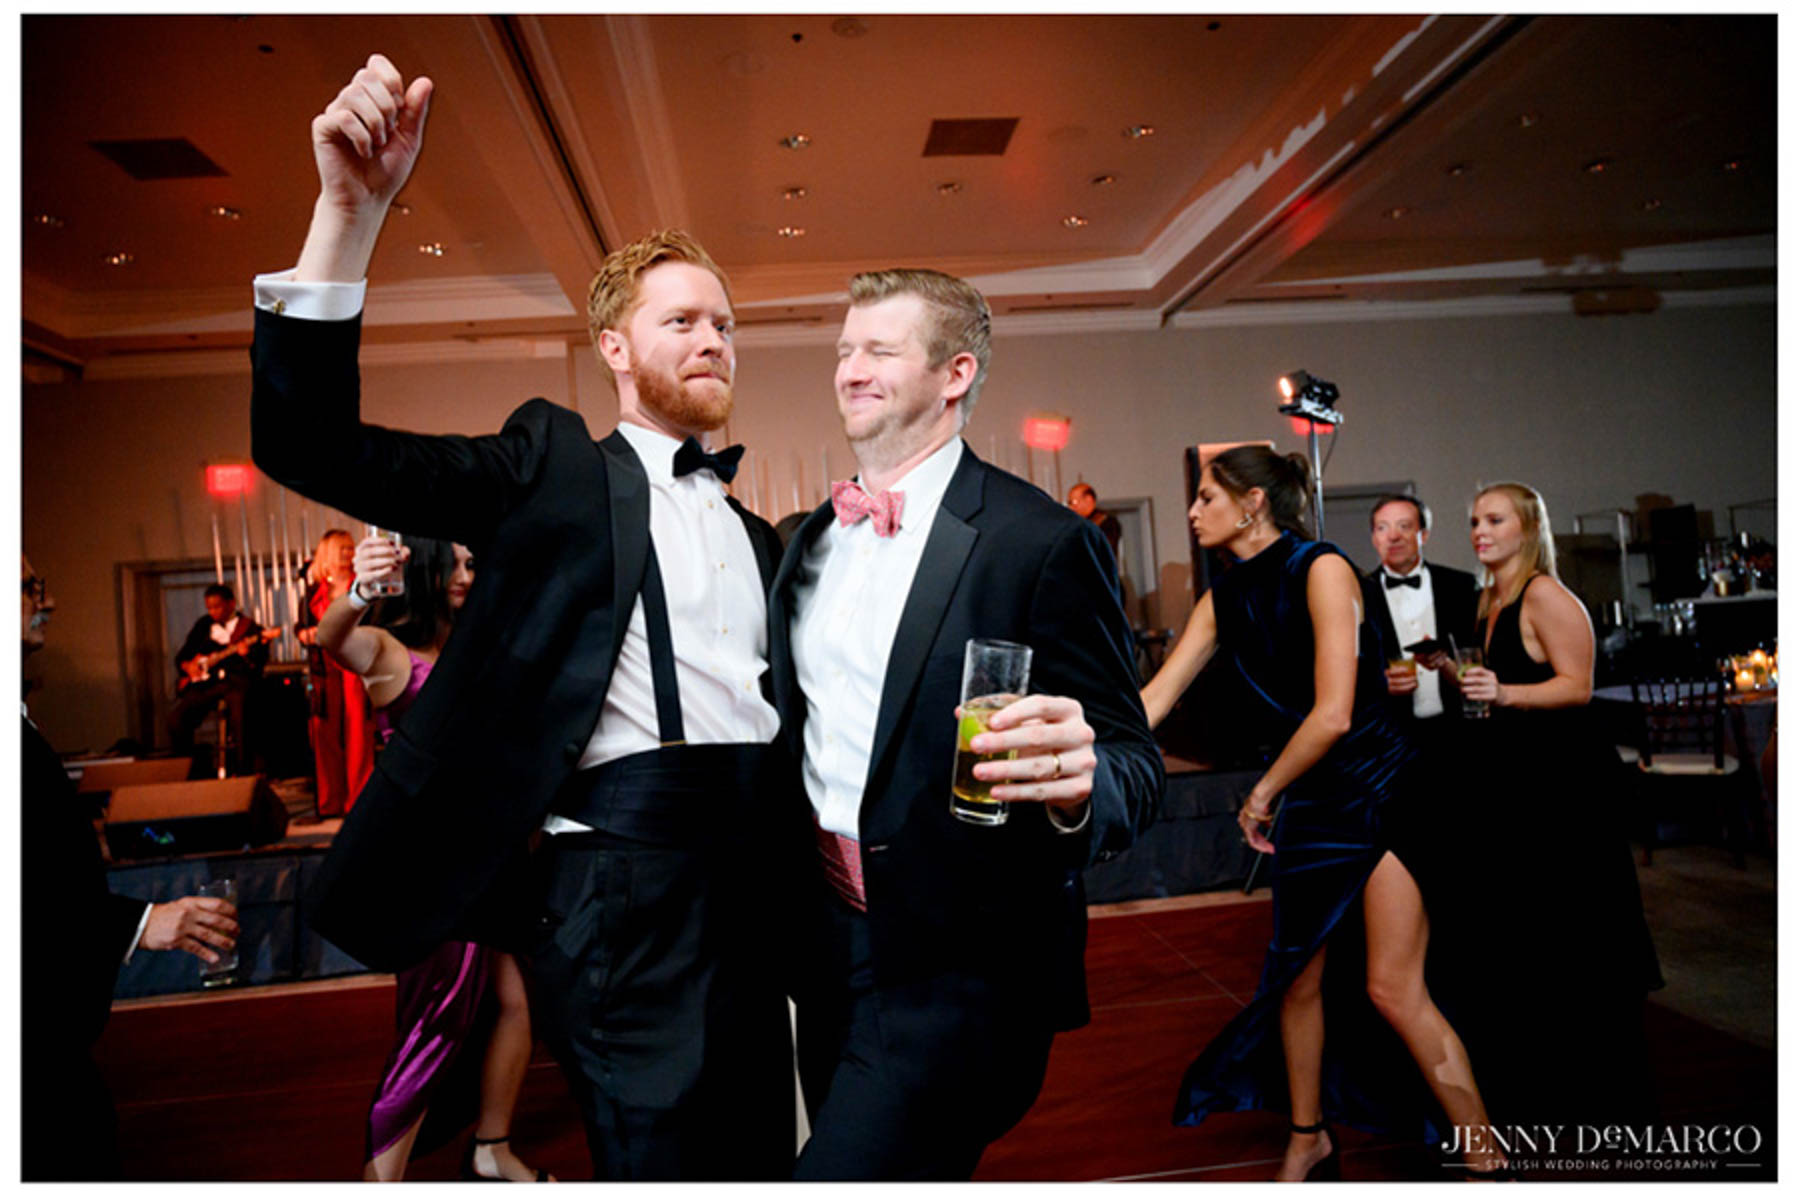 groom dances with friend during the reception